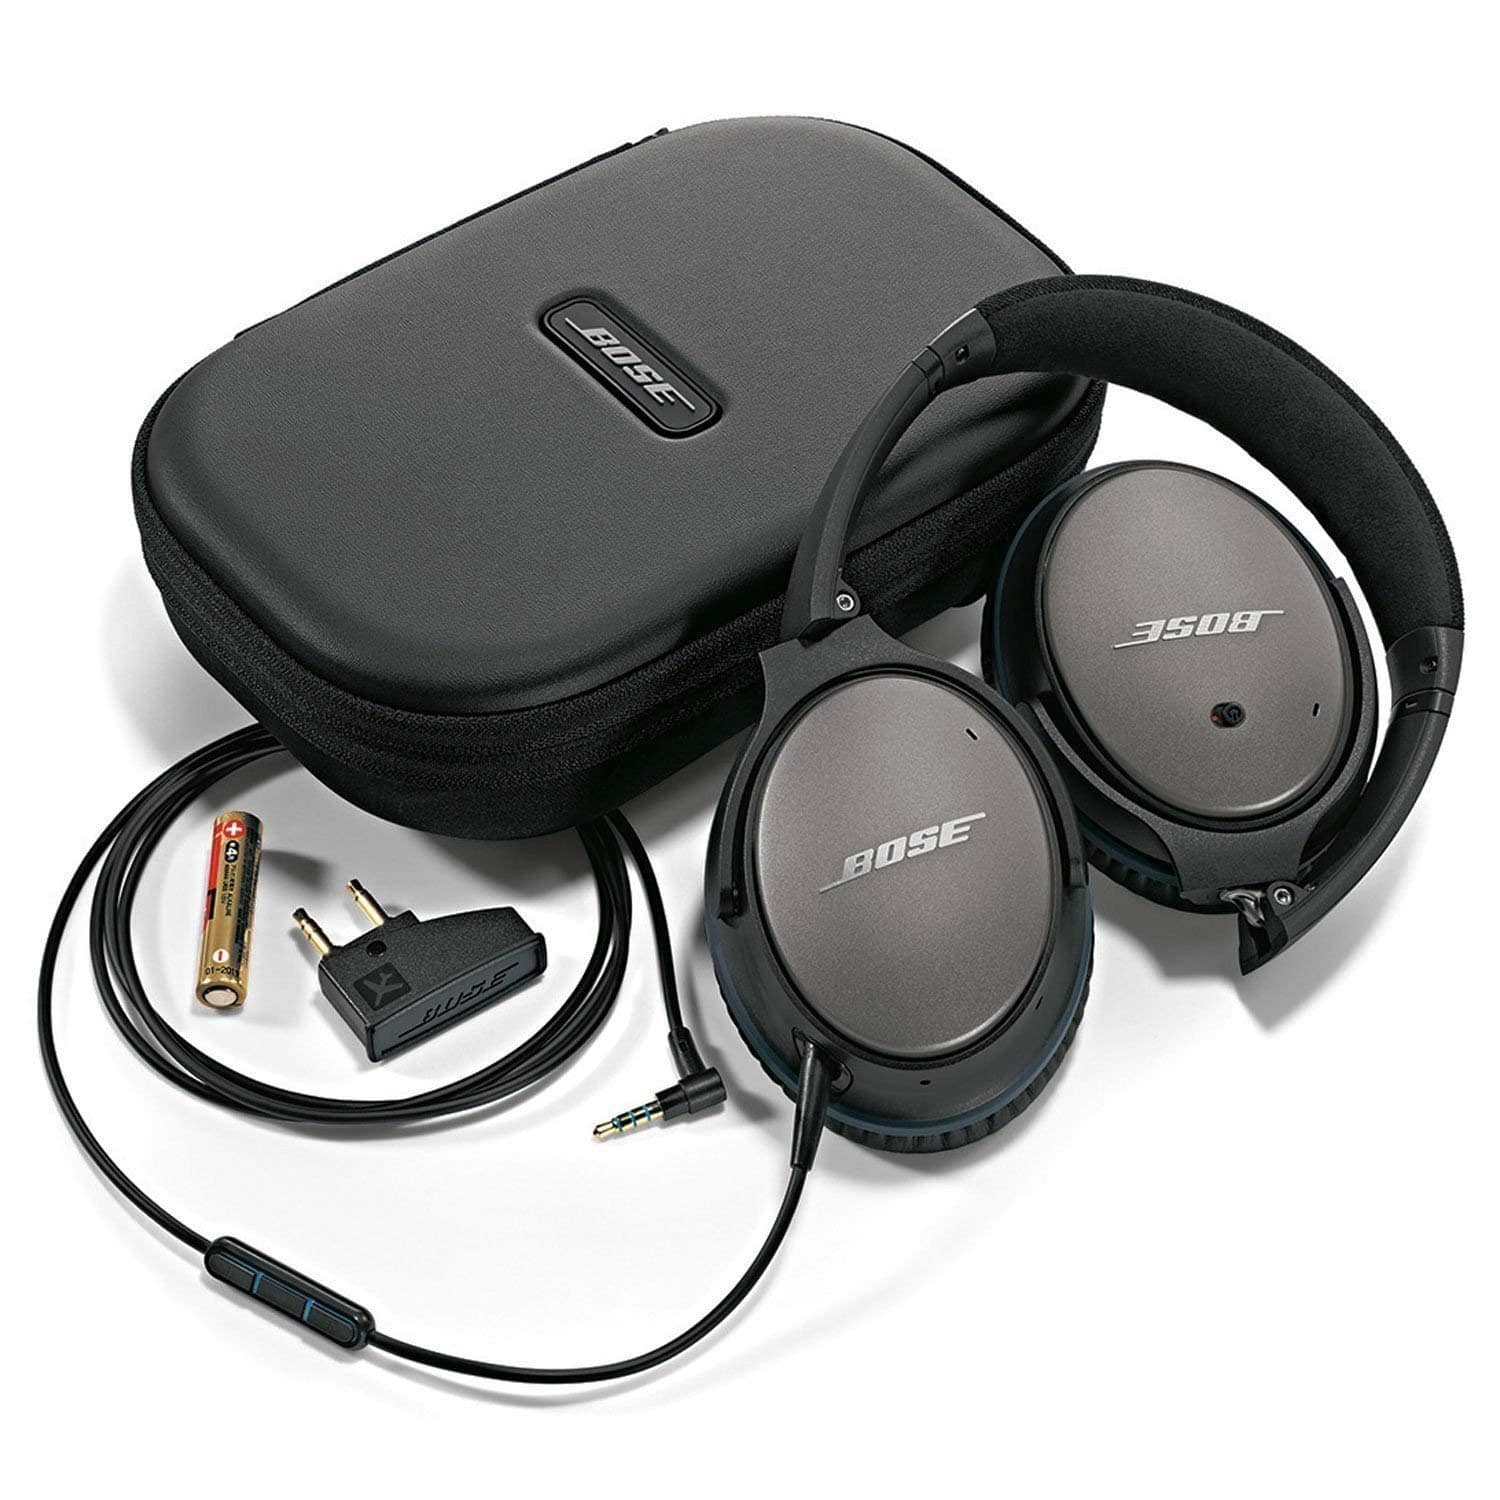 36979463ad6 Bose QuietComfort 25 Acoustic Noise Cancelling Wired Headphones ...